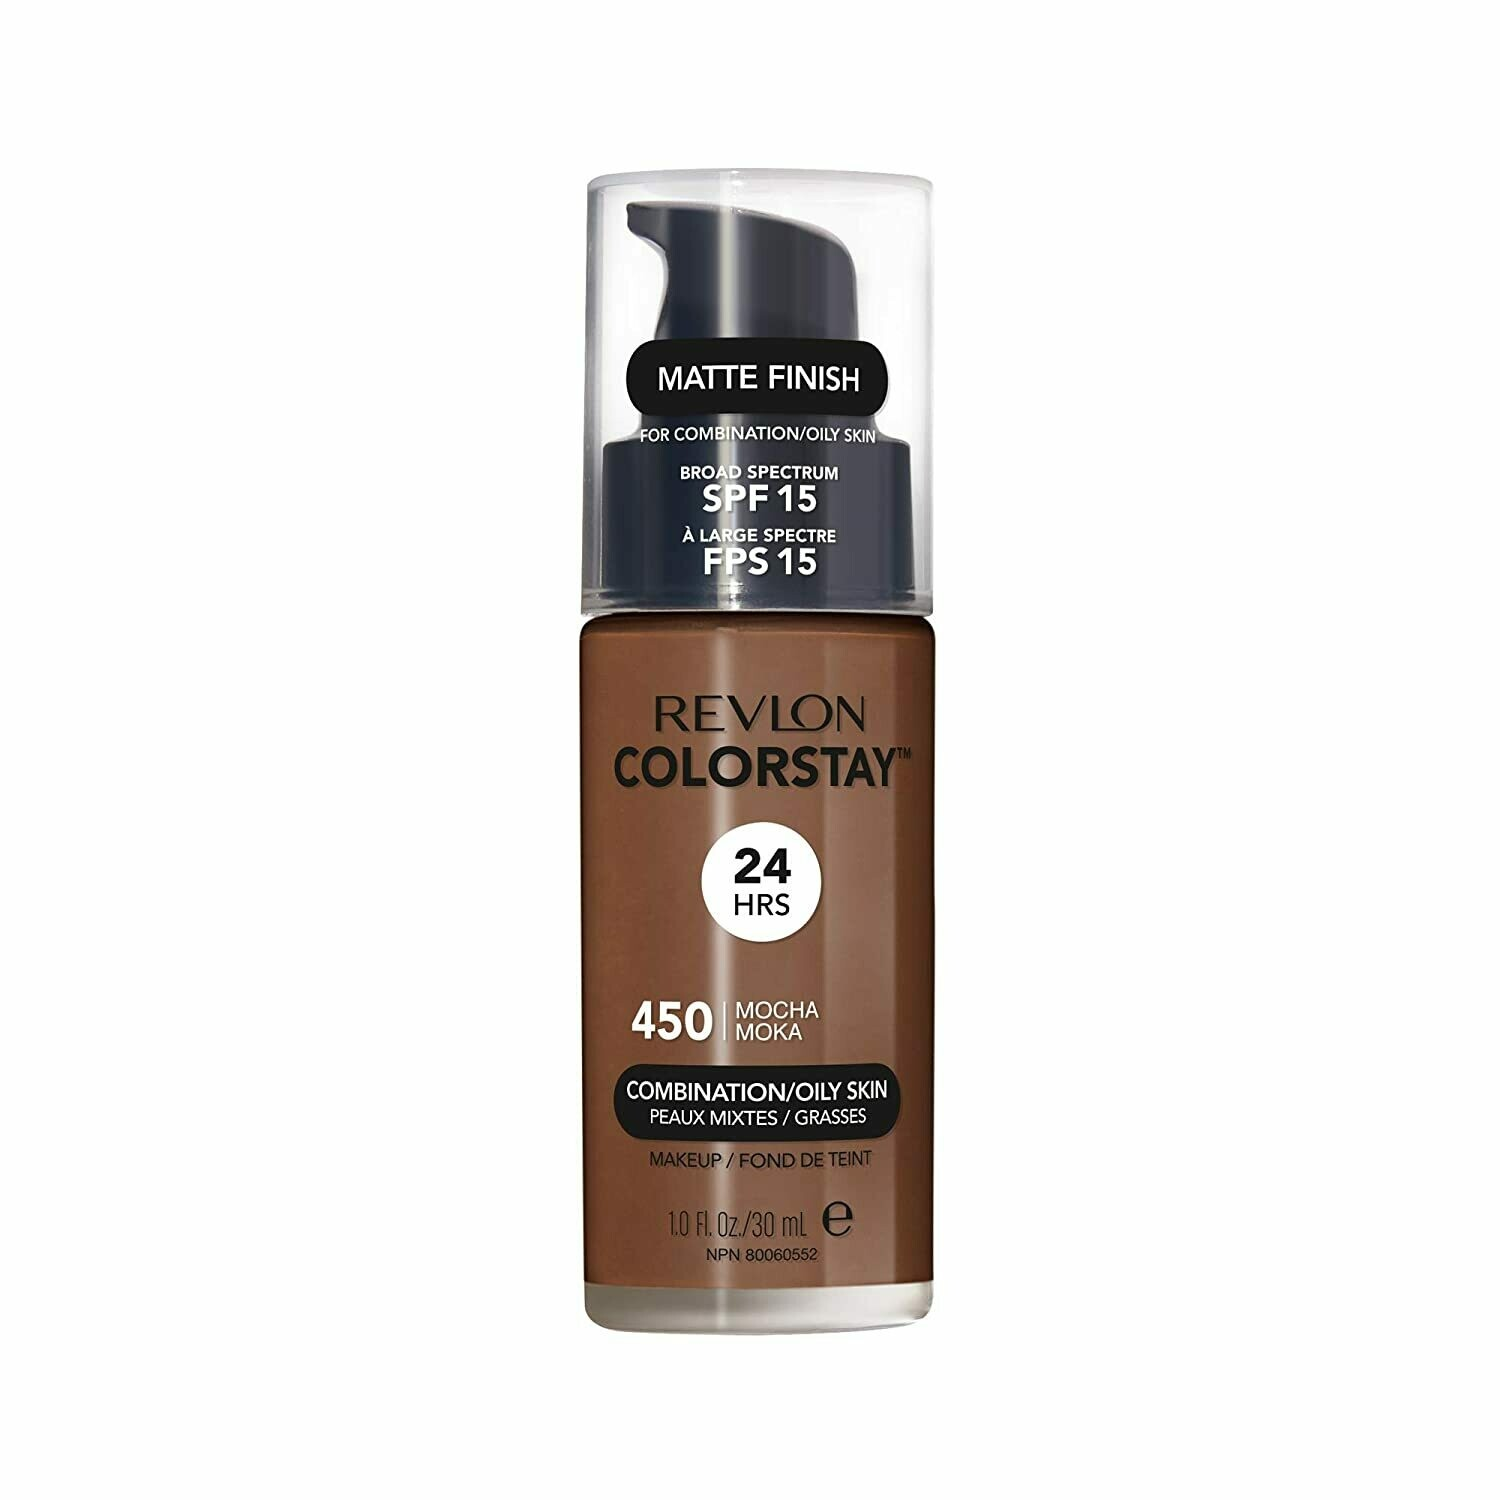 Revlon ColorStay Makeup for Combination/Oily Skin SPF 15, Matte Finish, 450 Mocha, 1 Count